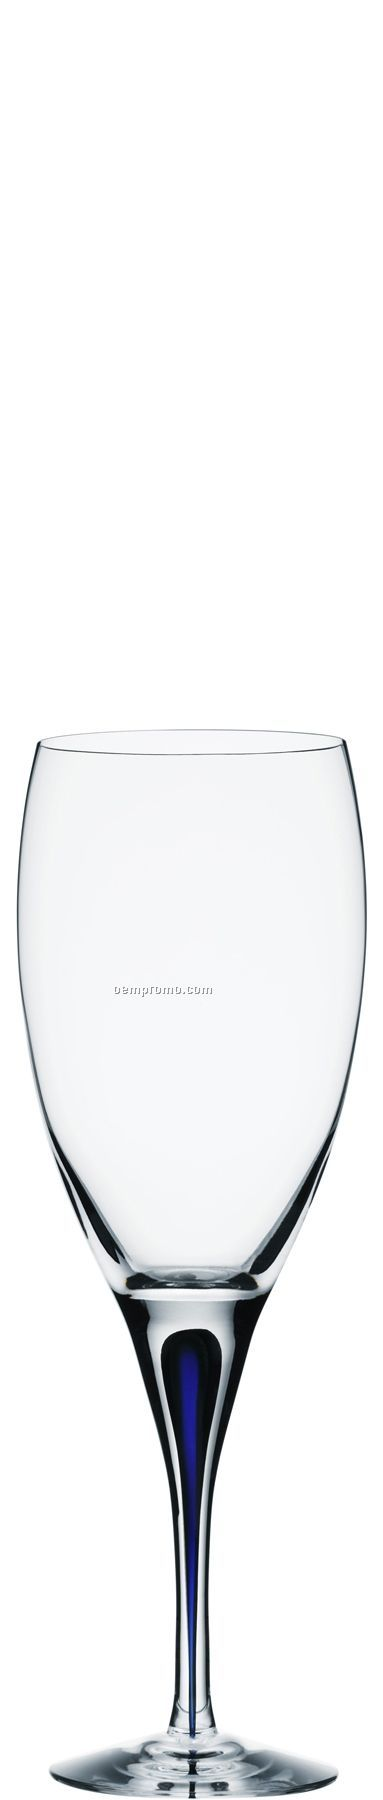 Intermezzo Blue Crystal White Wine Stemware W/ Blue Drop